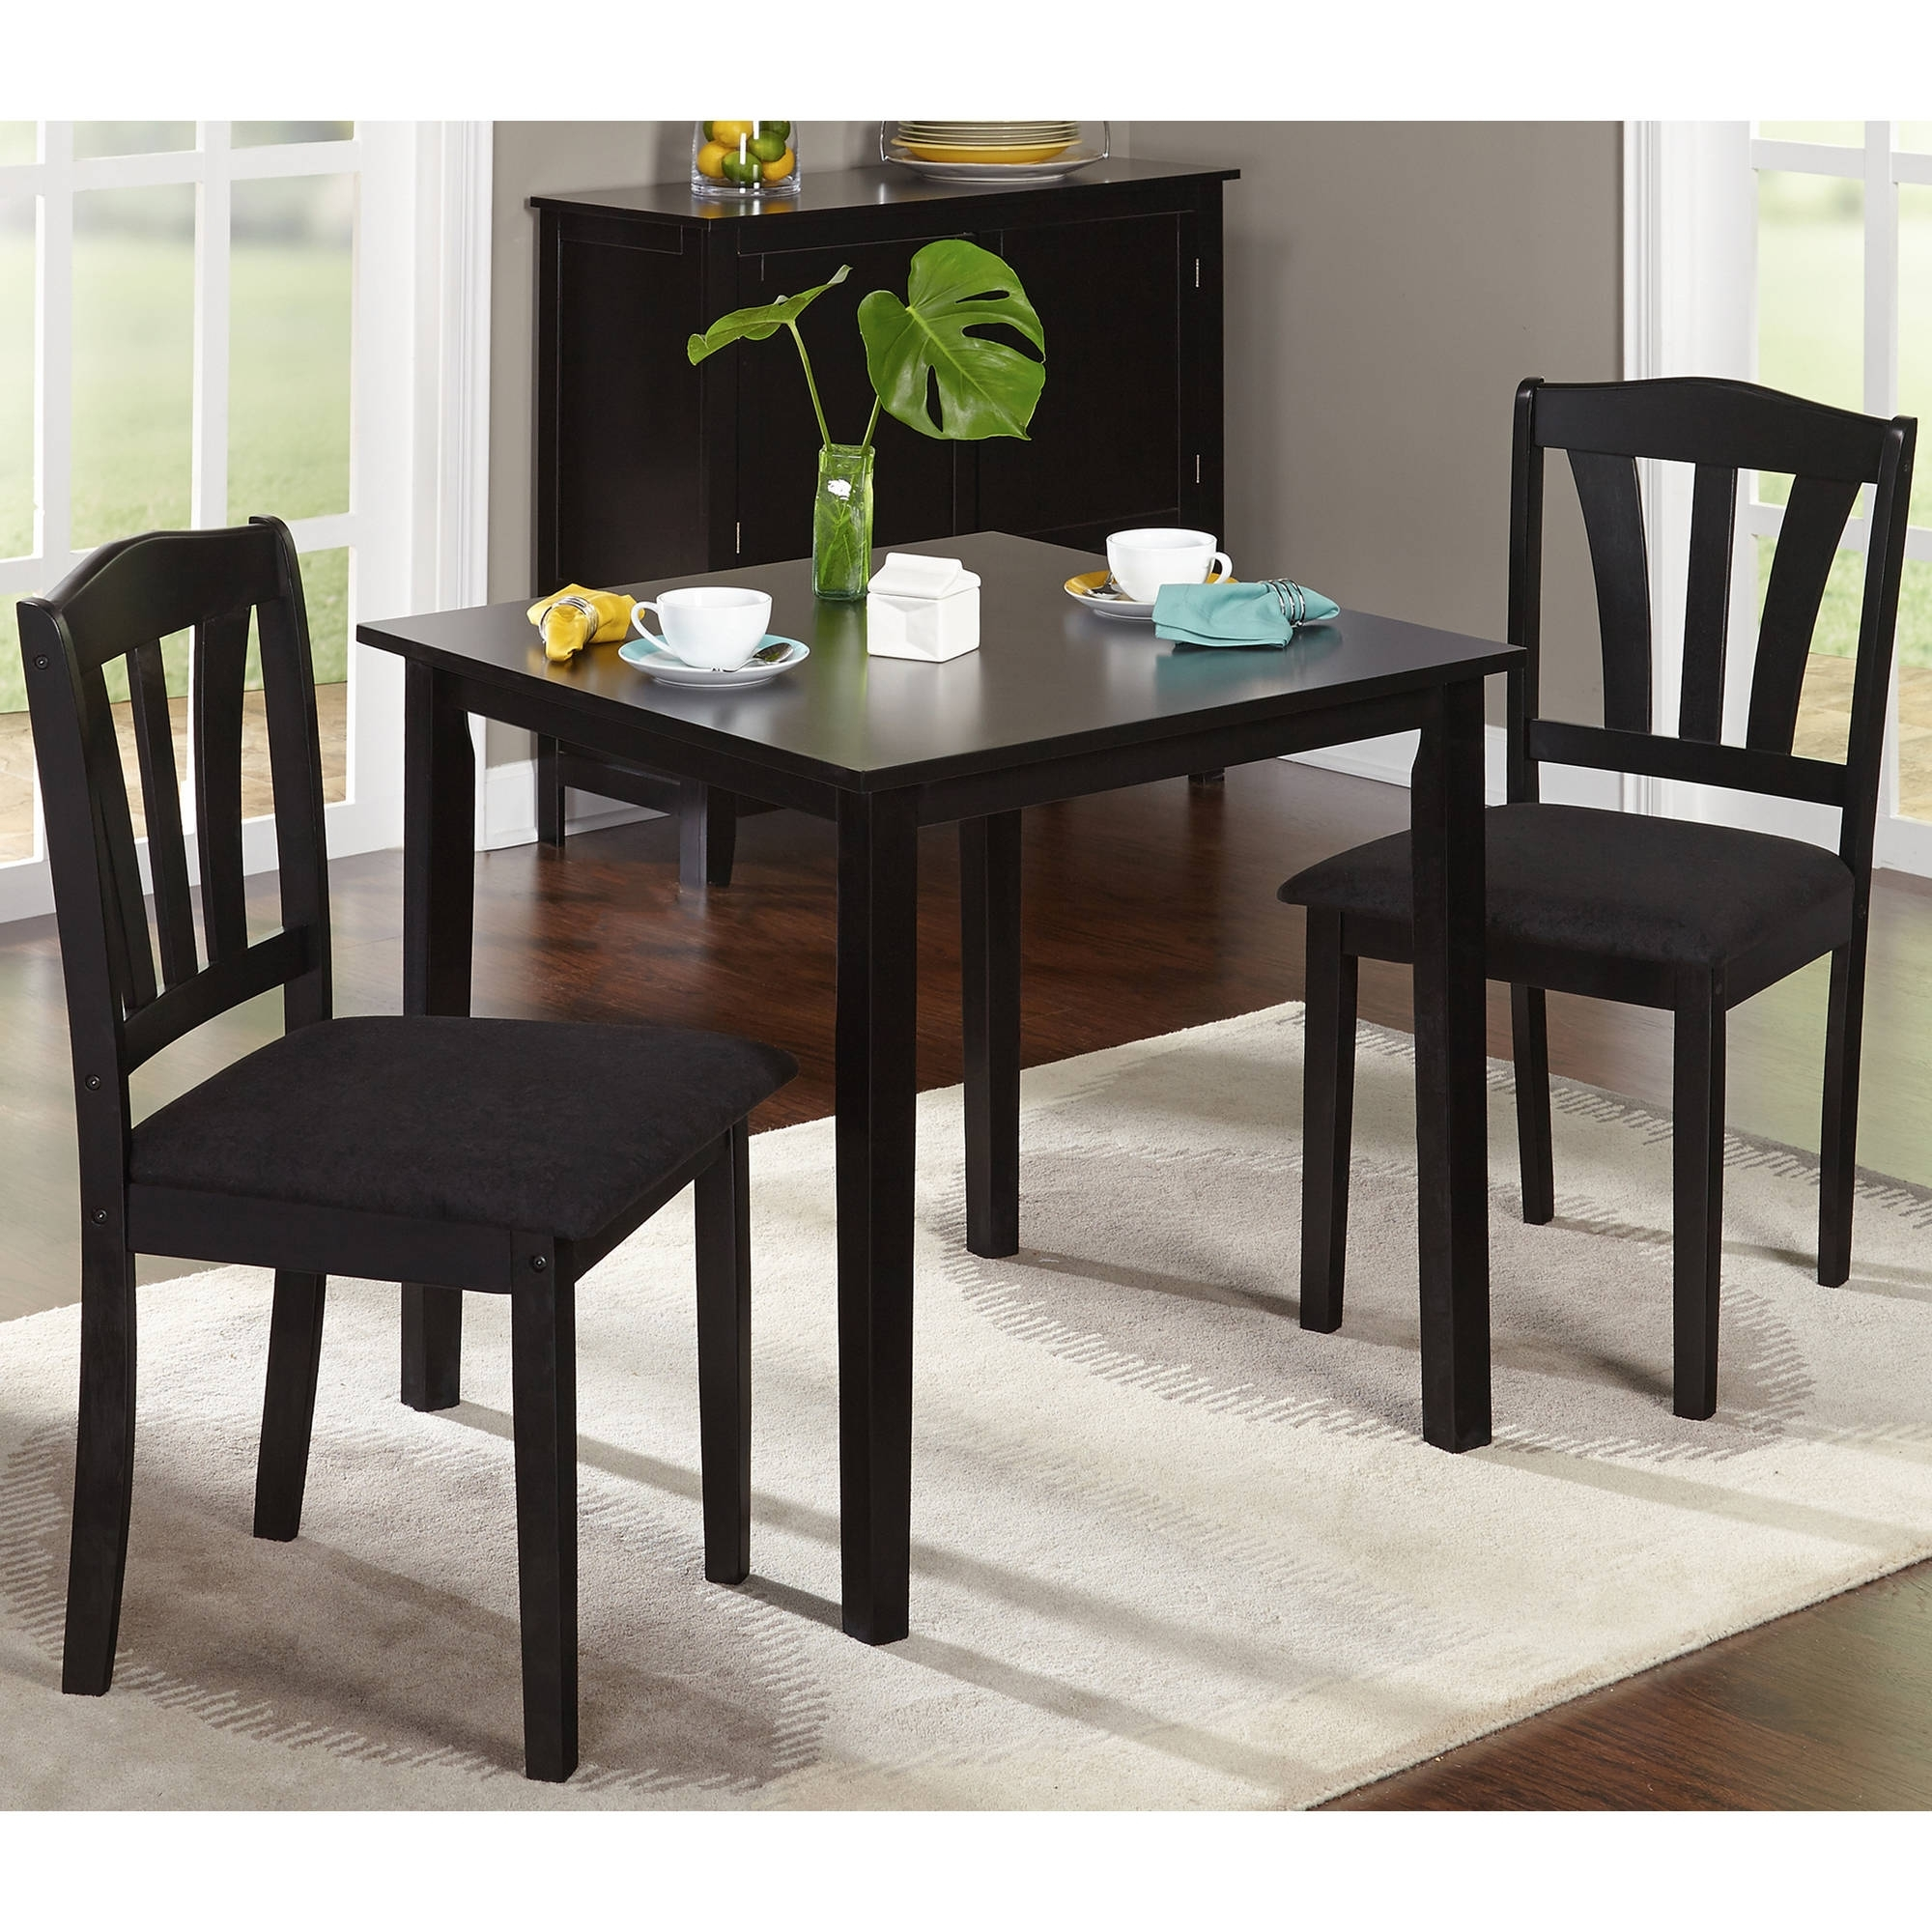 Well Known Metropolitan 3 Piece Dining Set, Multiple Finishes – Walmart Intended For Dining Sets (View 24 of 25)